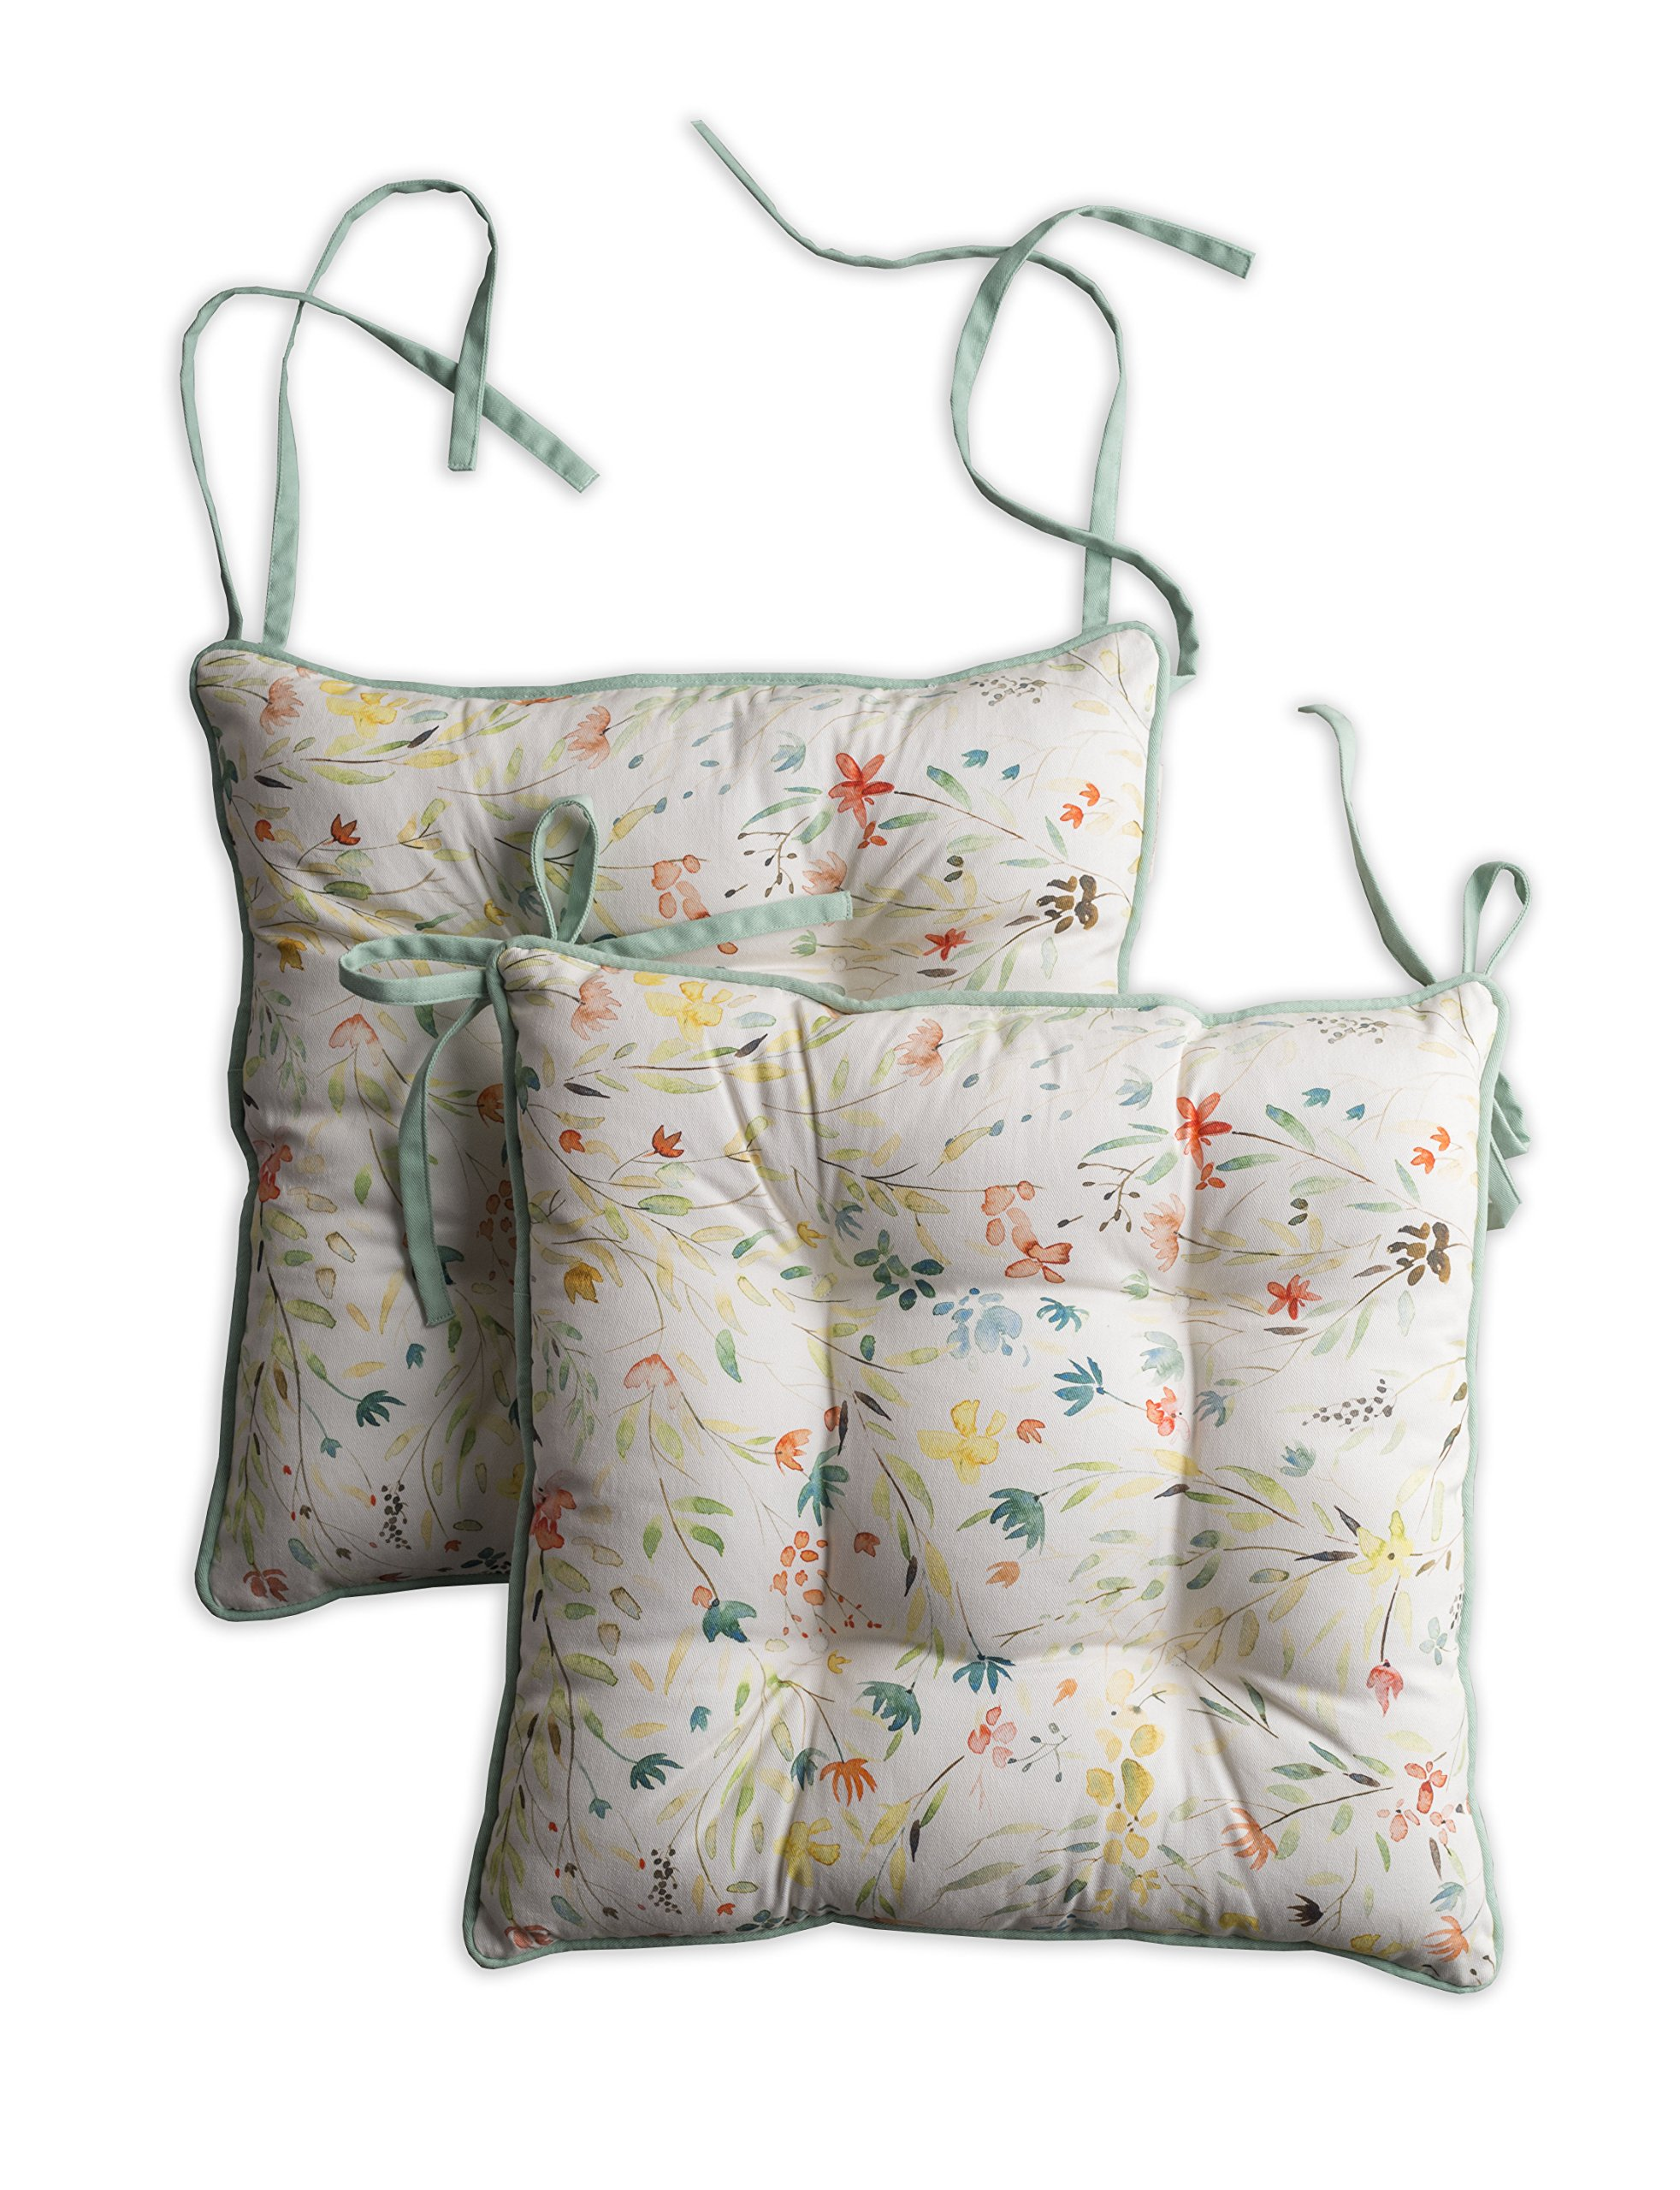 Maison d' Hermine Colmar Set of 2 Chair Pads 16 Inch by 16 Inch